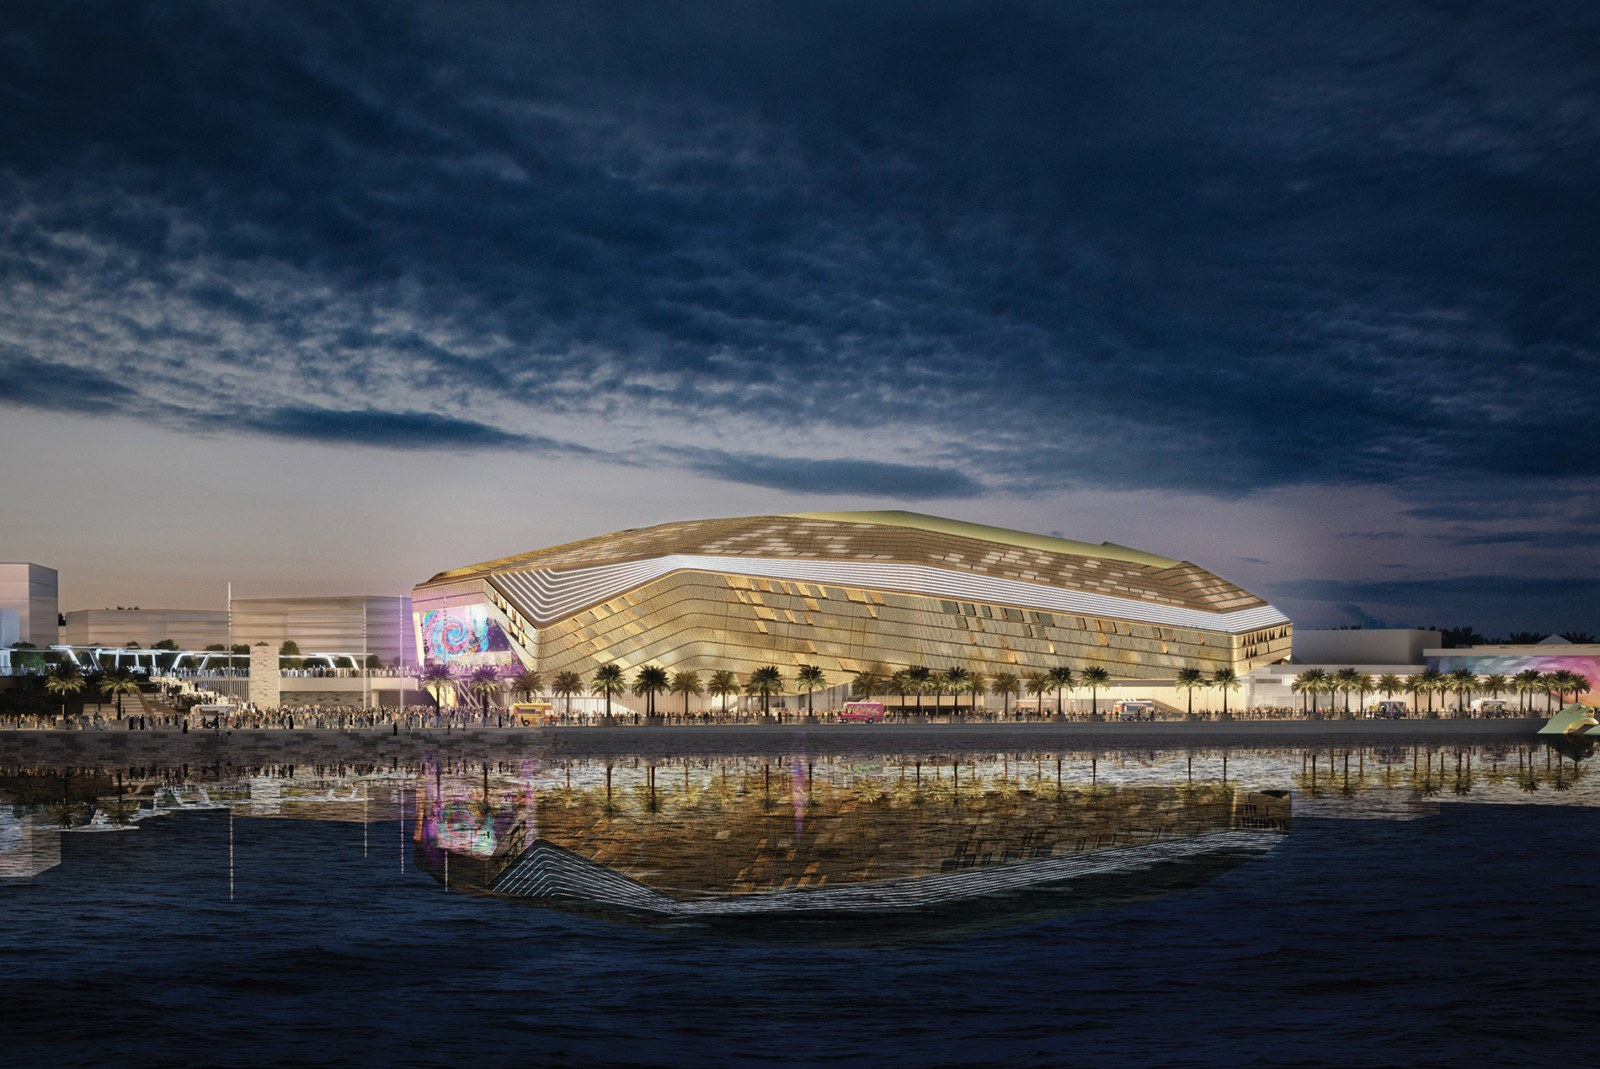 New 18,000-capacity indoor entertainment venue in Abu Dhabi officially named Etihad Arena